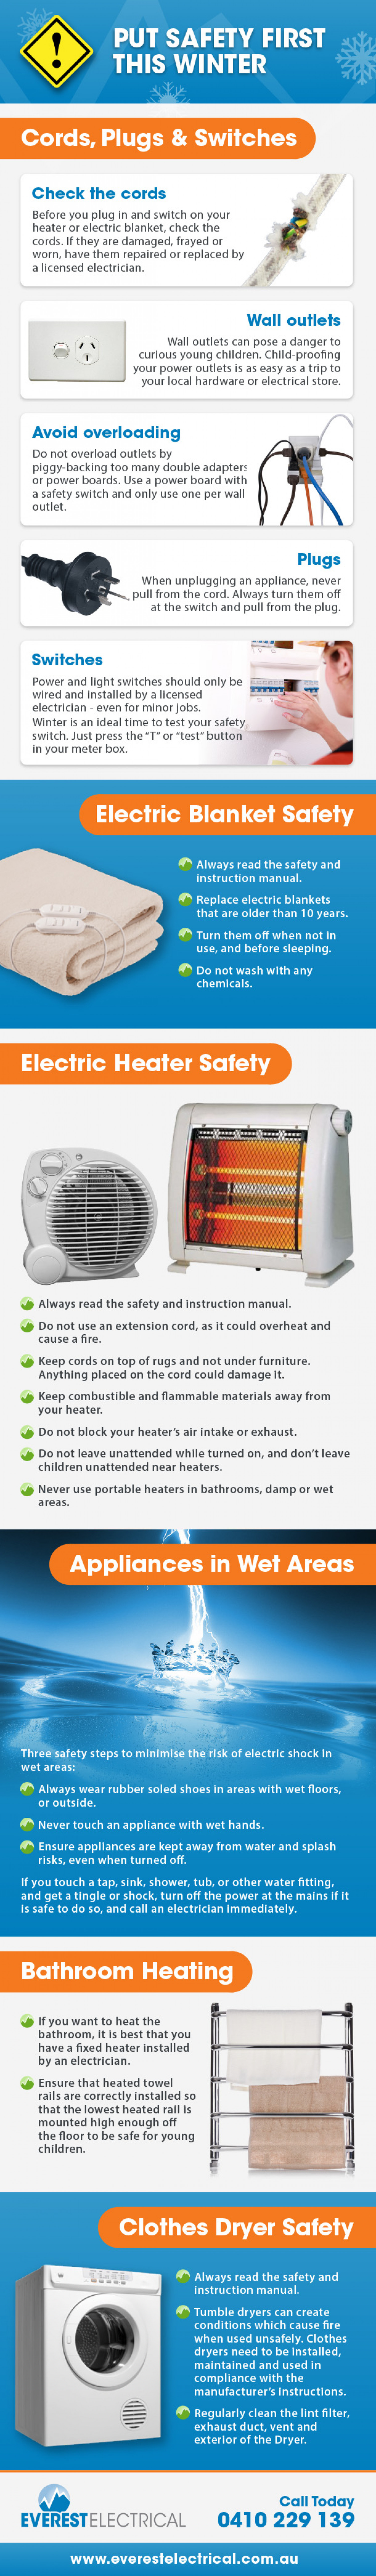 Put Safety First This Winter Infographic